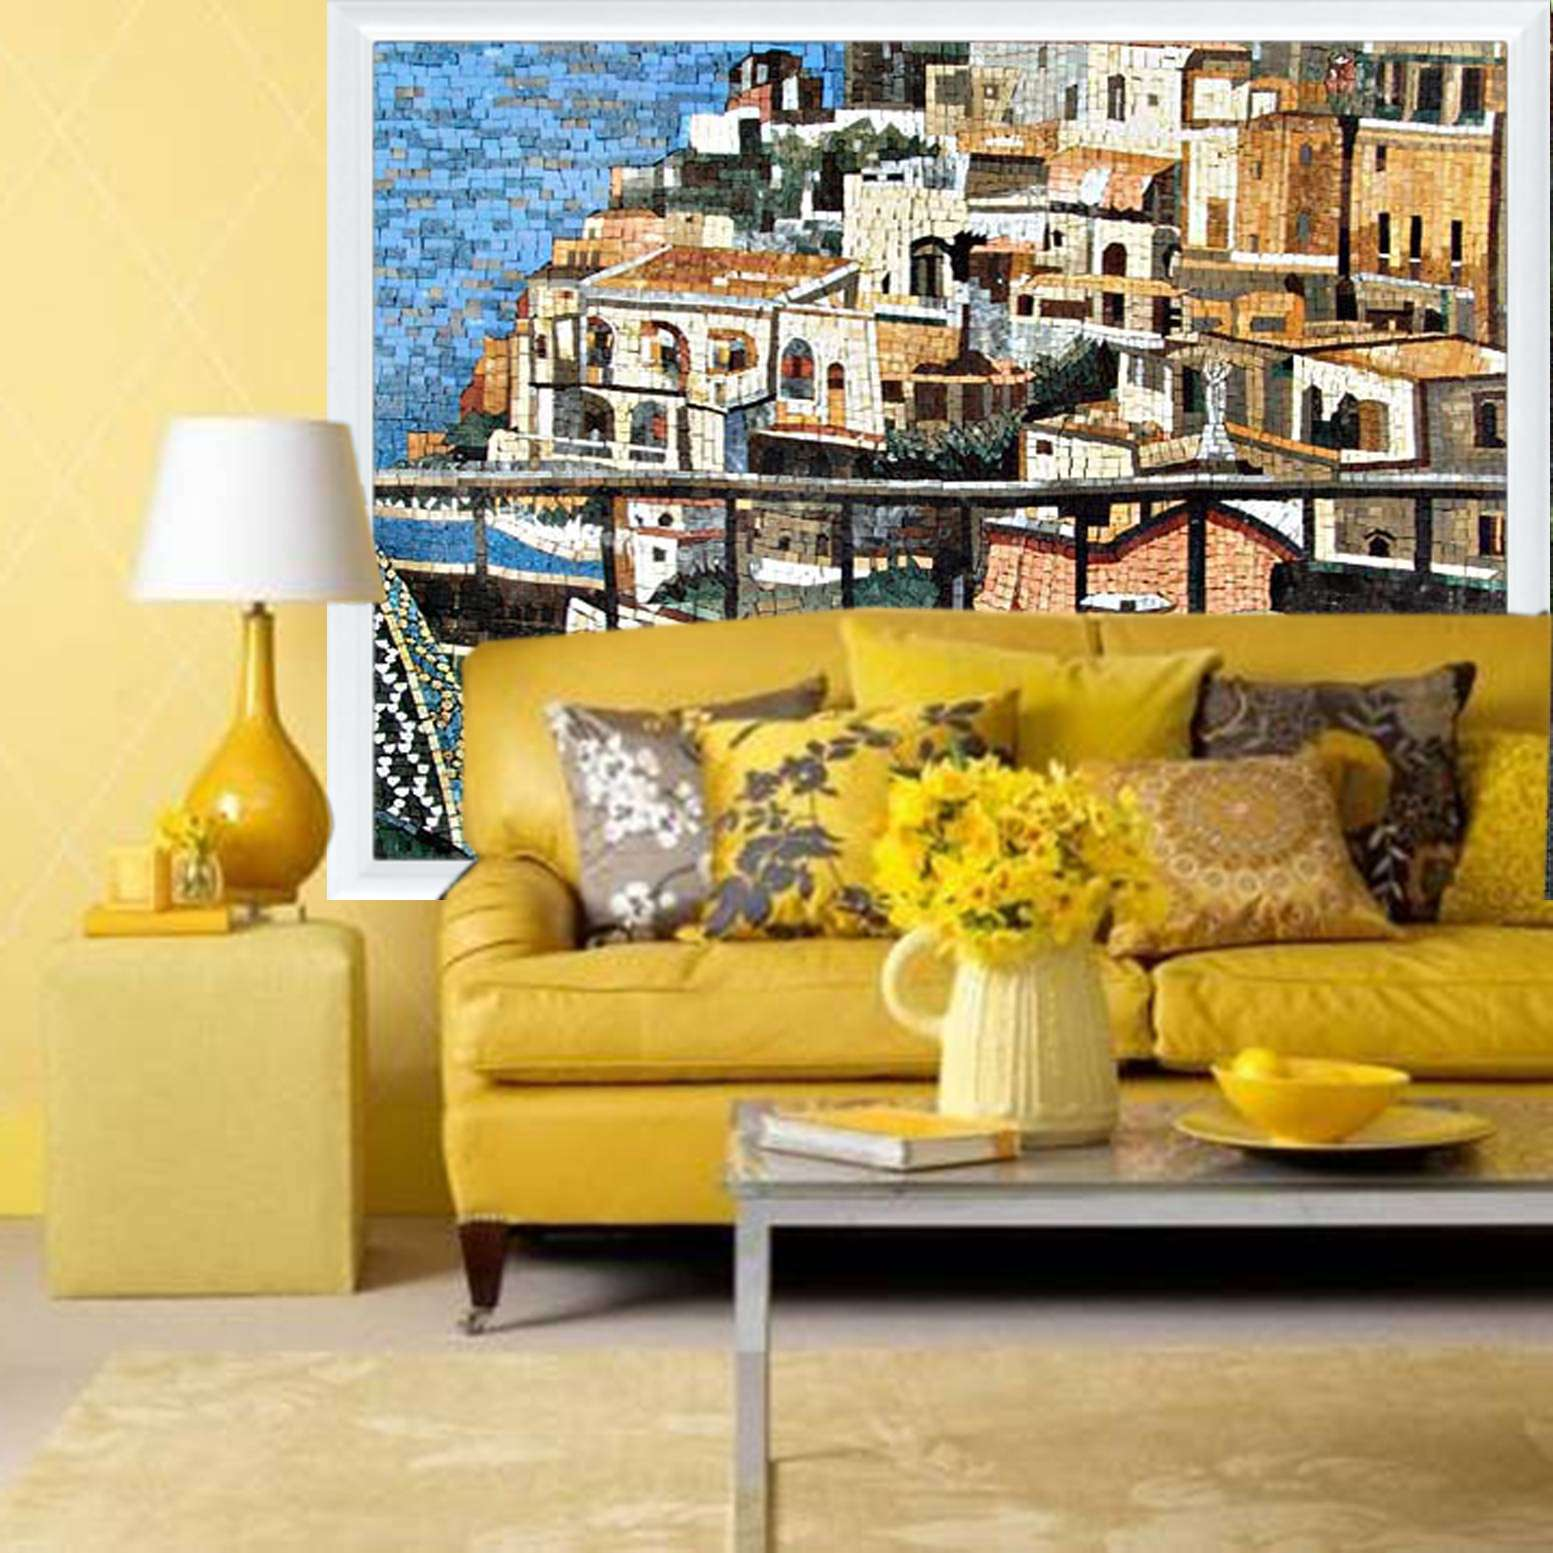 MS261yellowpaintcolors_yellowlivingroom_luxurywithimageyellow